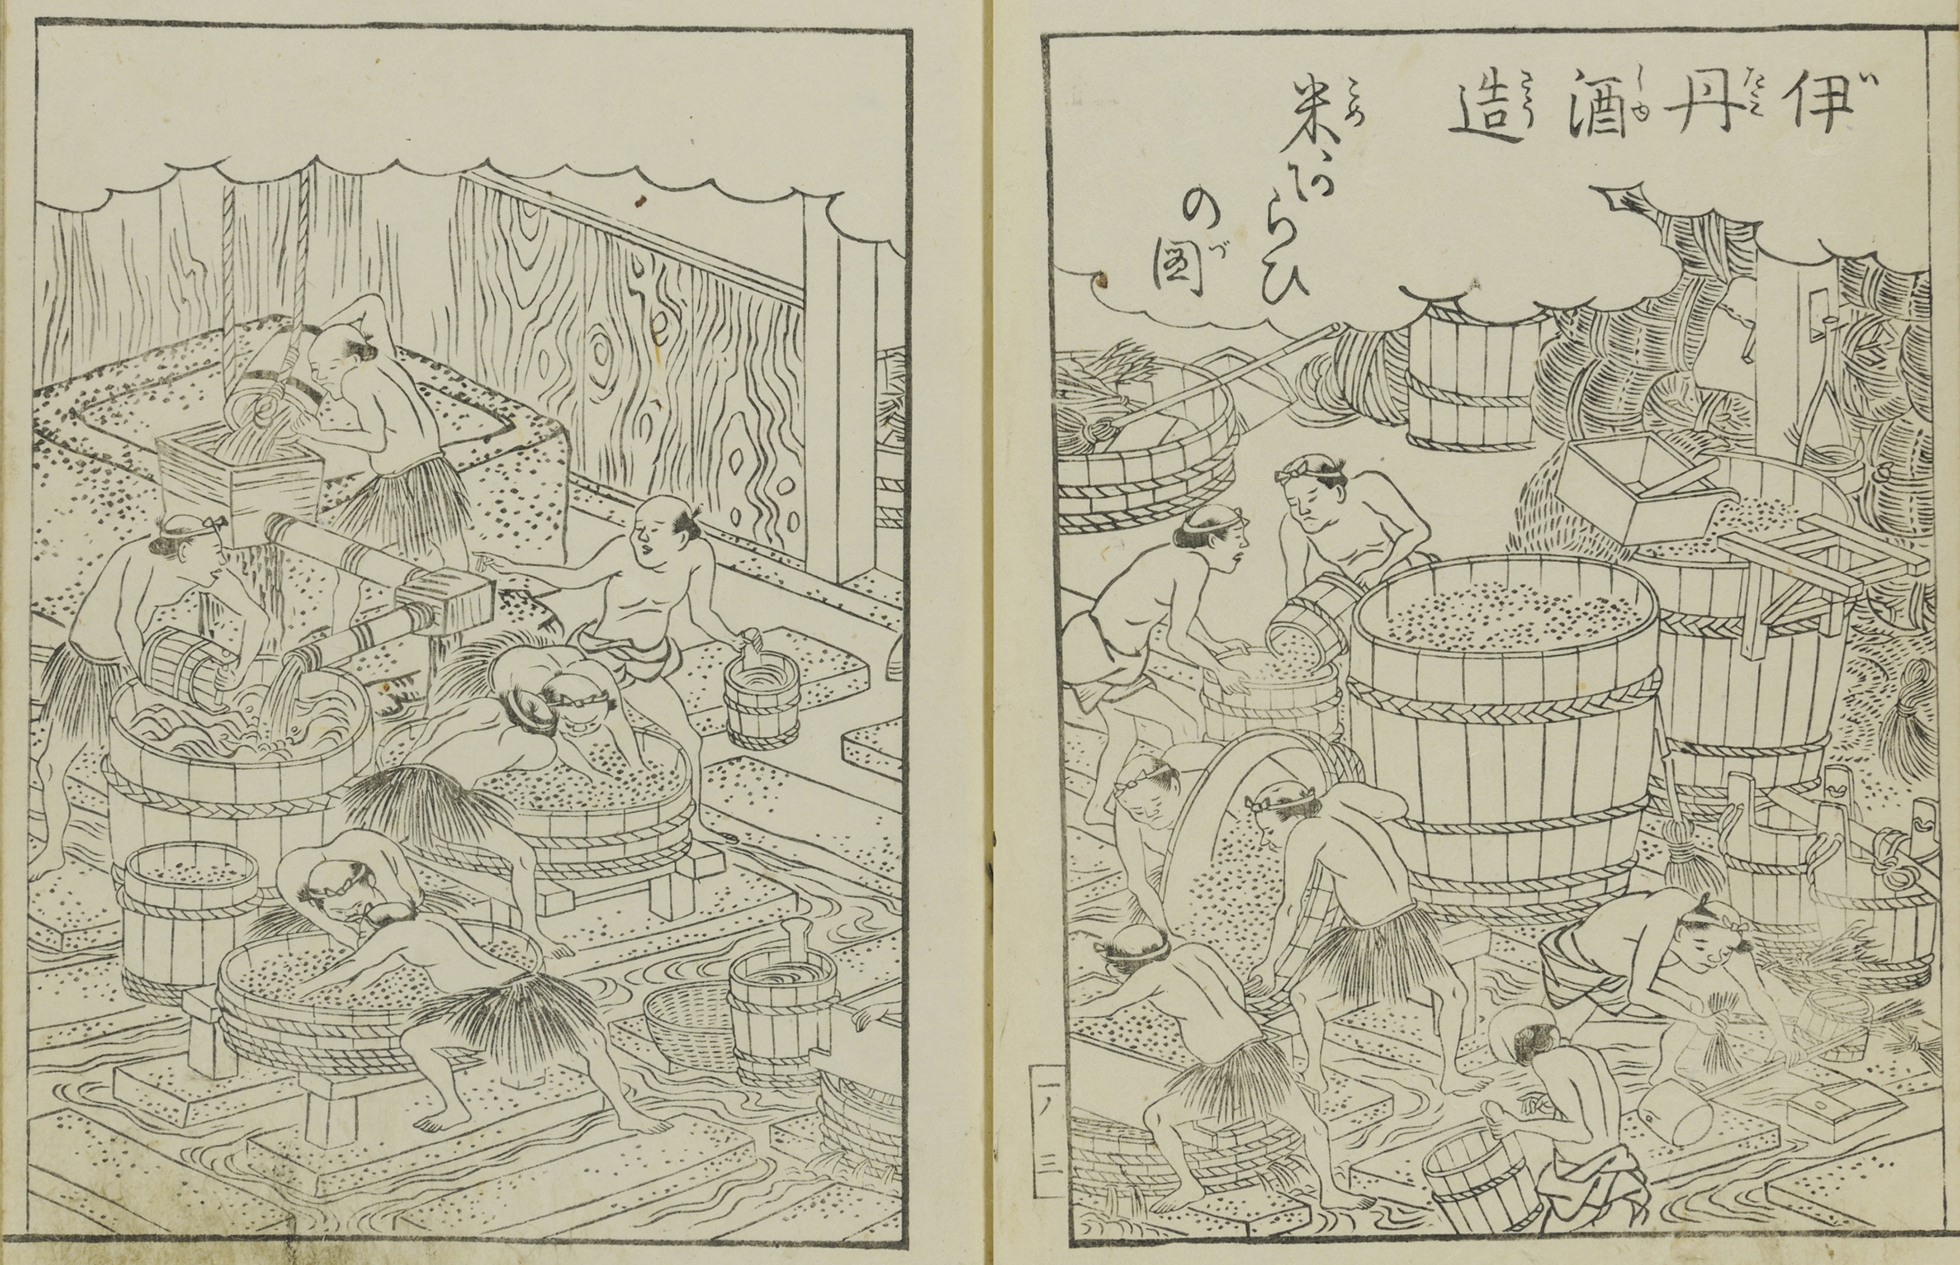 A black and white woodblock print showing the process of making sake in Itami.